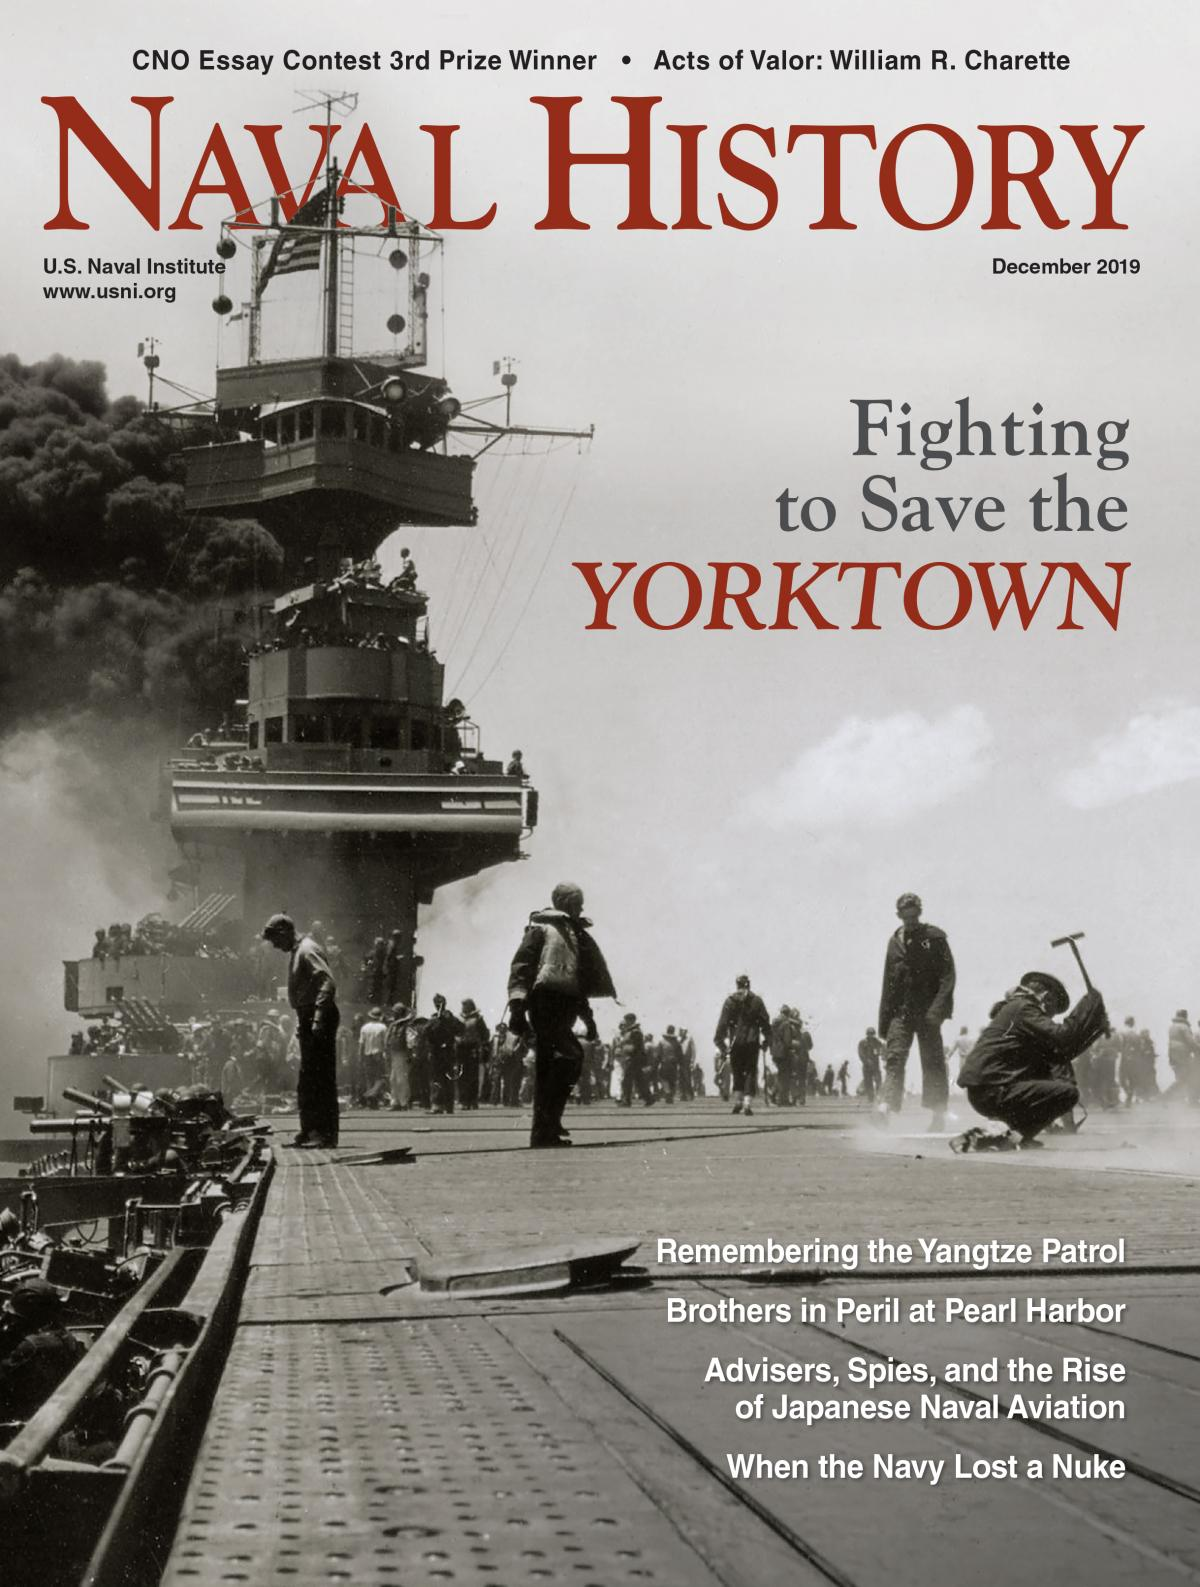 Naval History Magazine - December 2019 Volume 34, Number 6 Cover